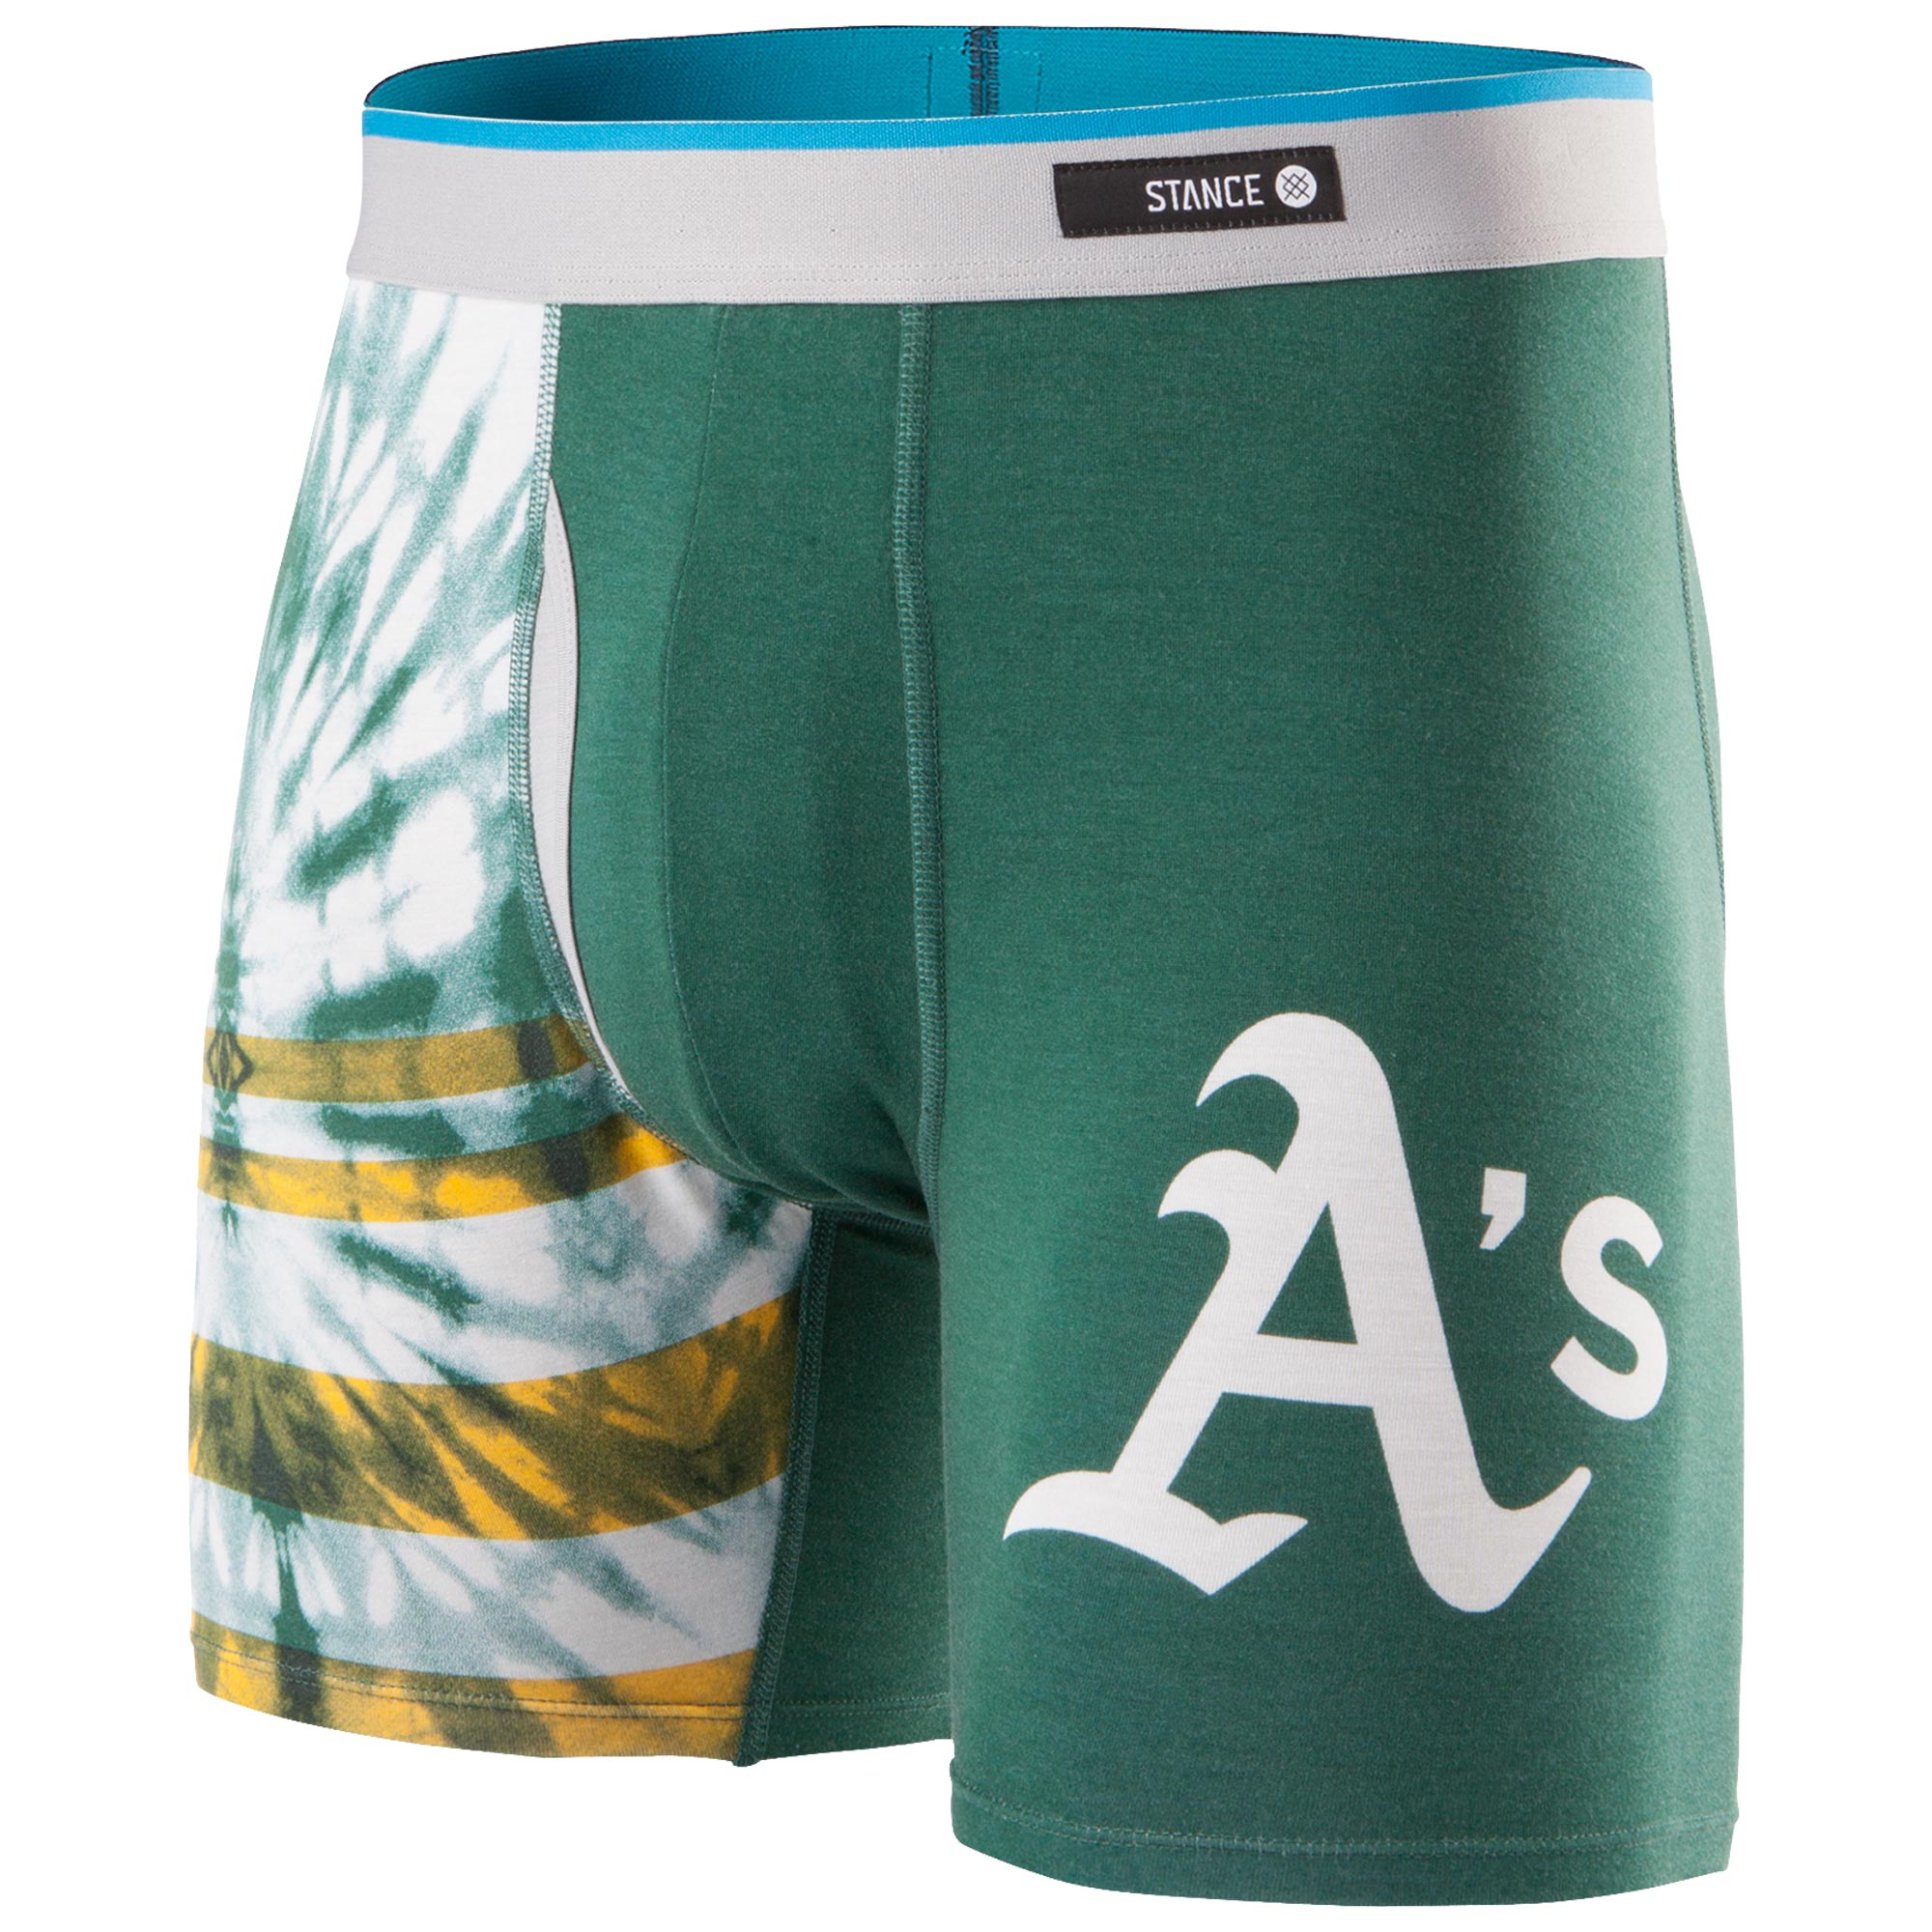 Oakland Athletics Stance Tie-Dye Underwear Green by Stance